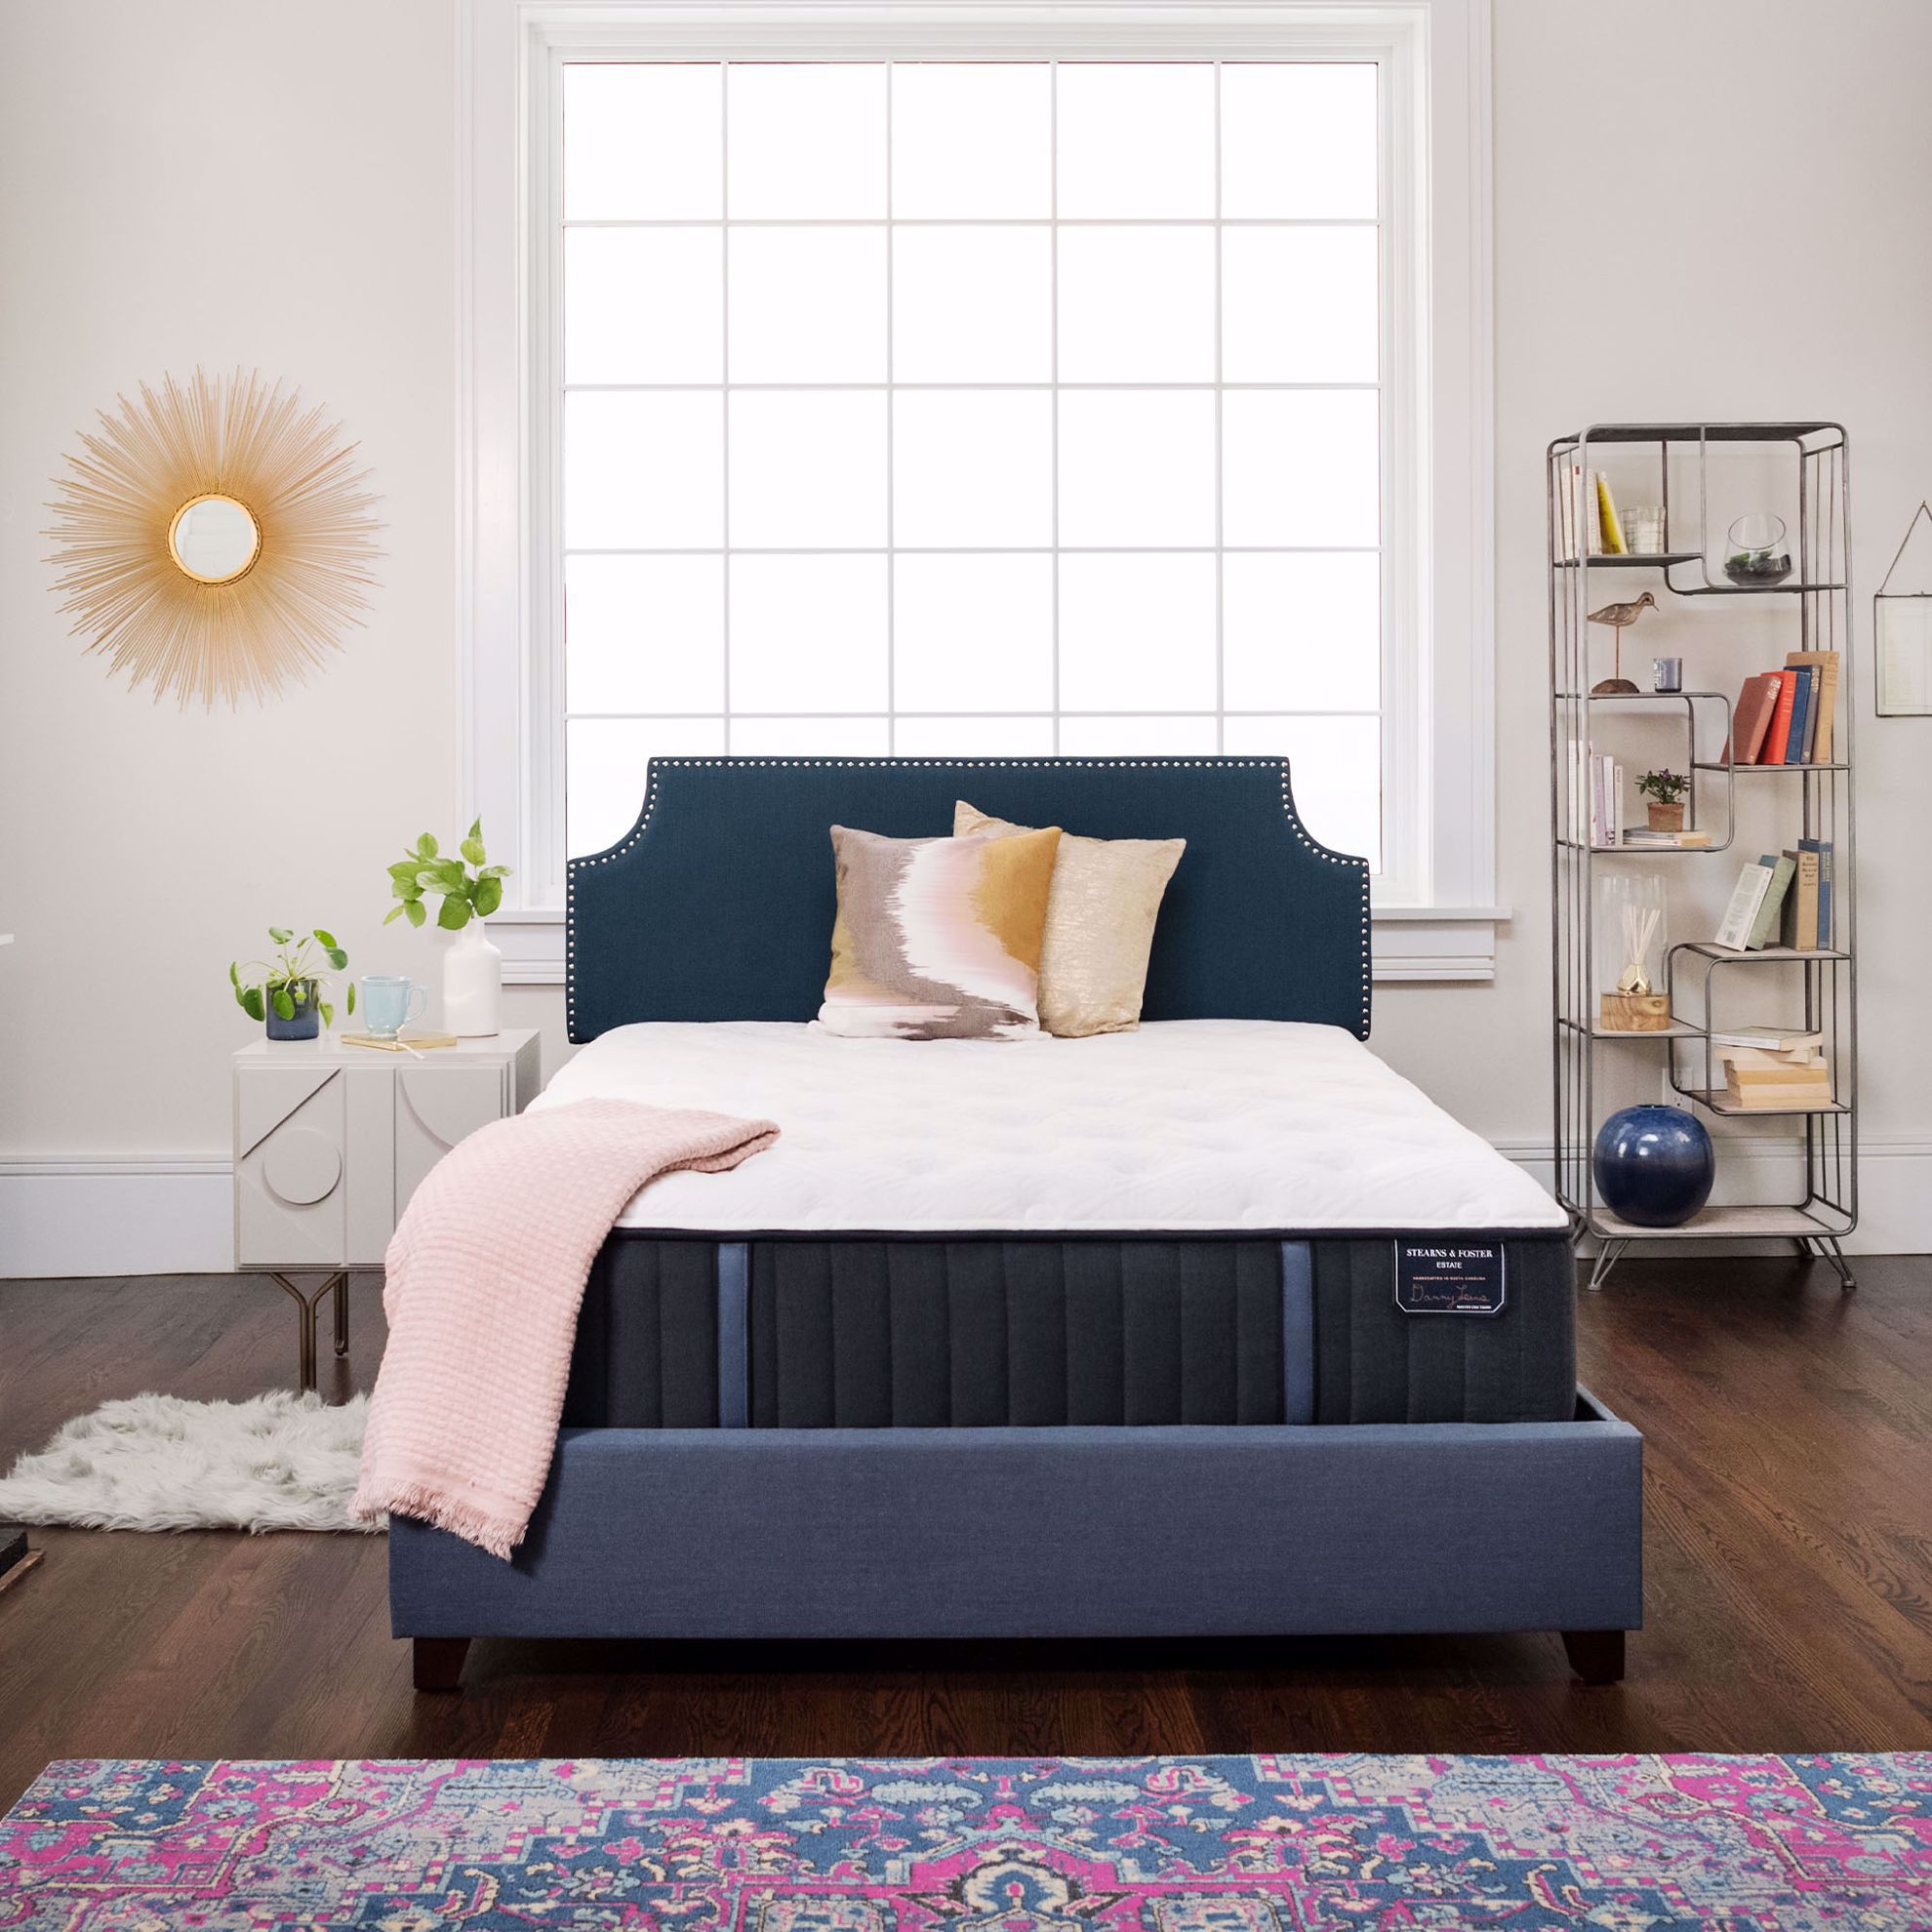 Picture of Stearns & Foster Hurston Luxury Cushion Firm Full Mattress